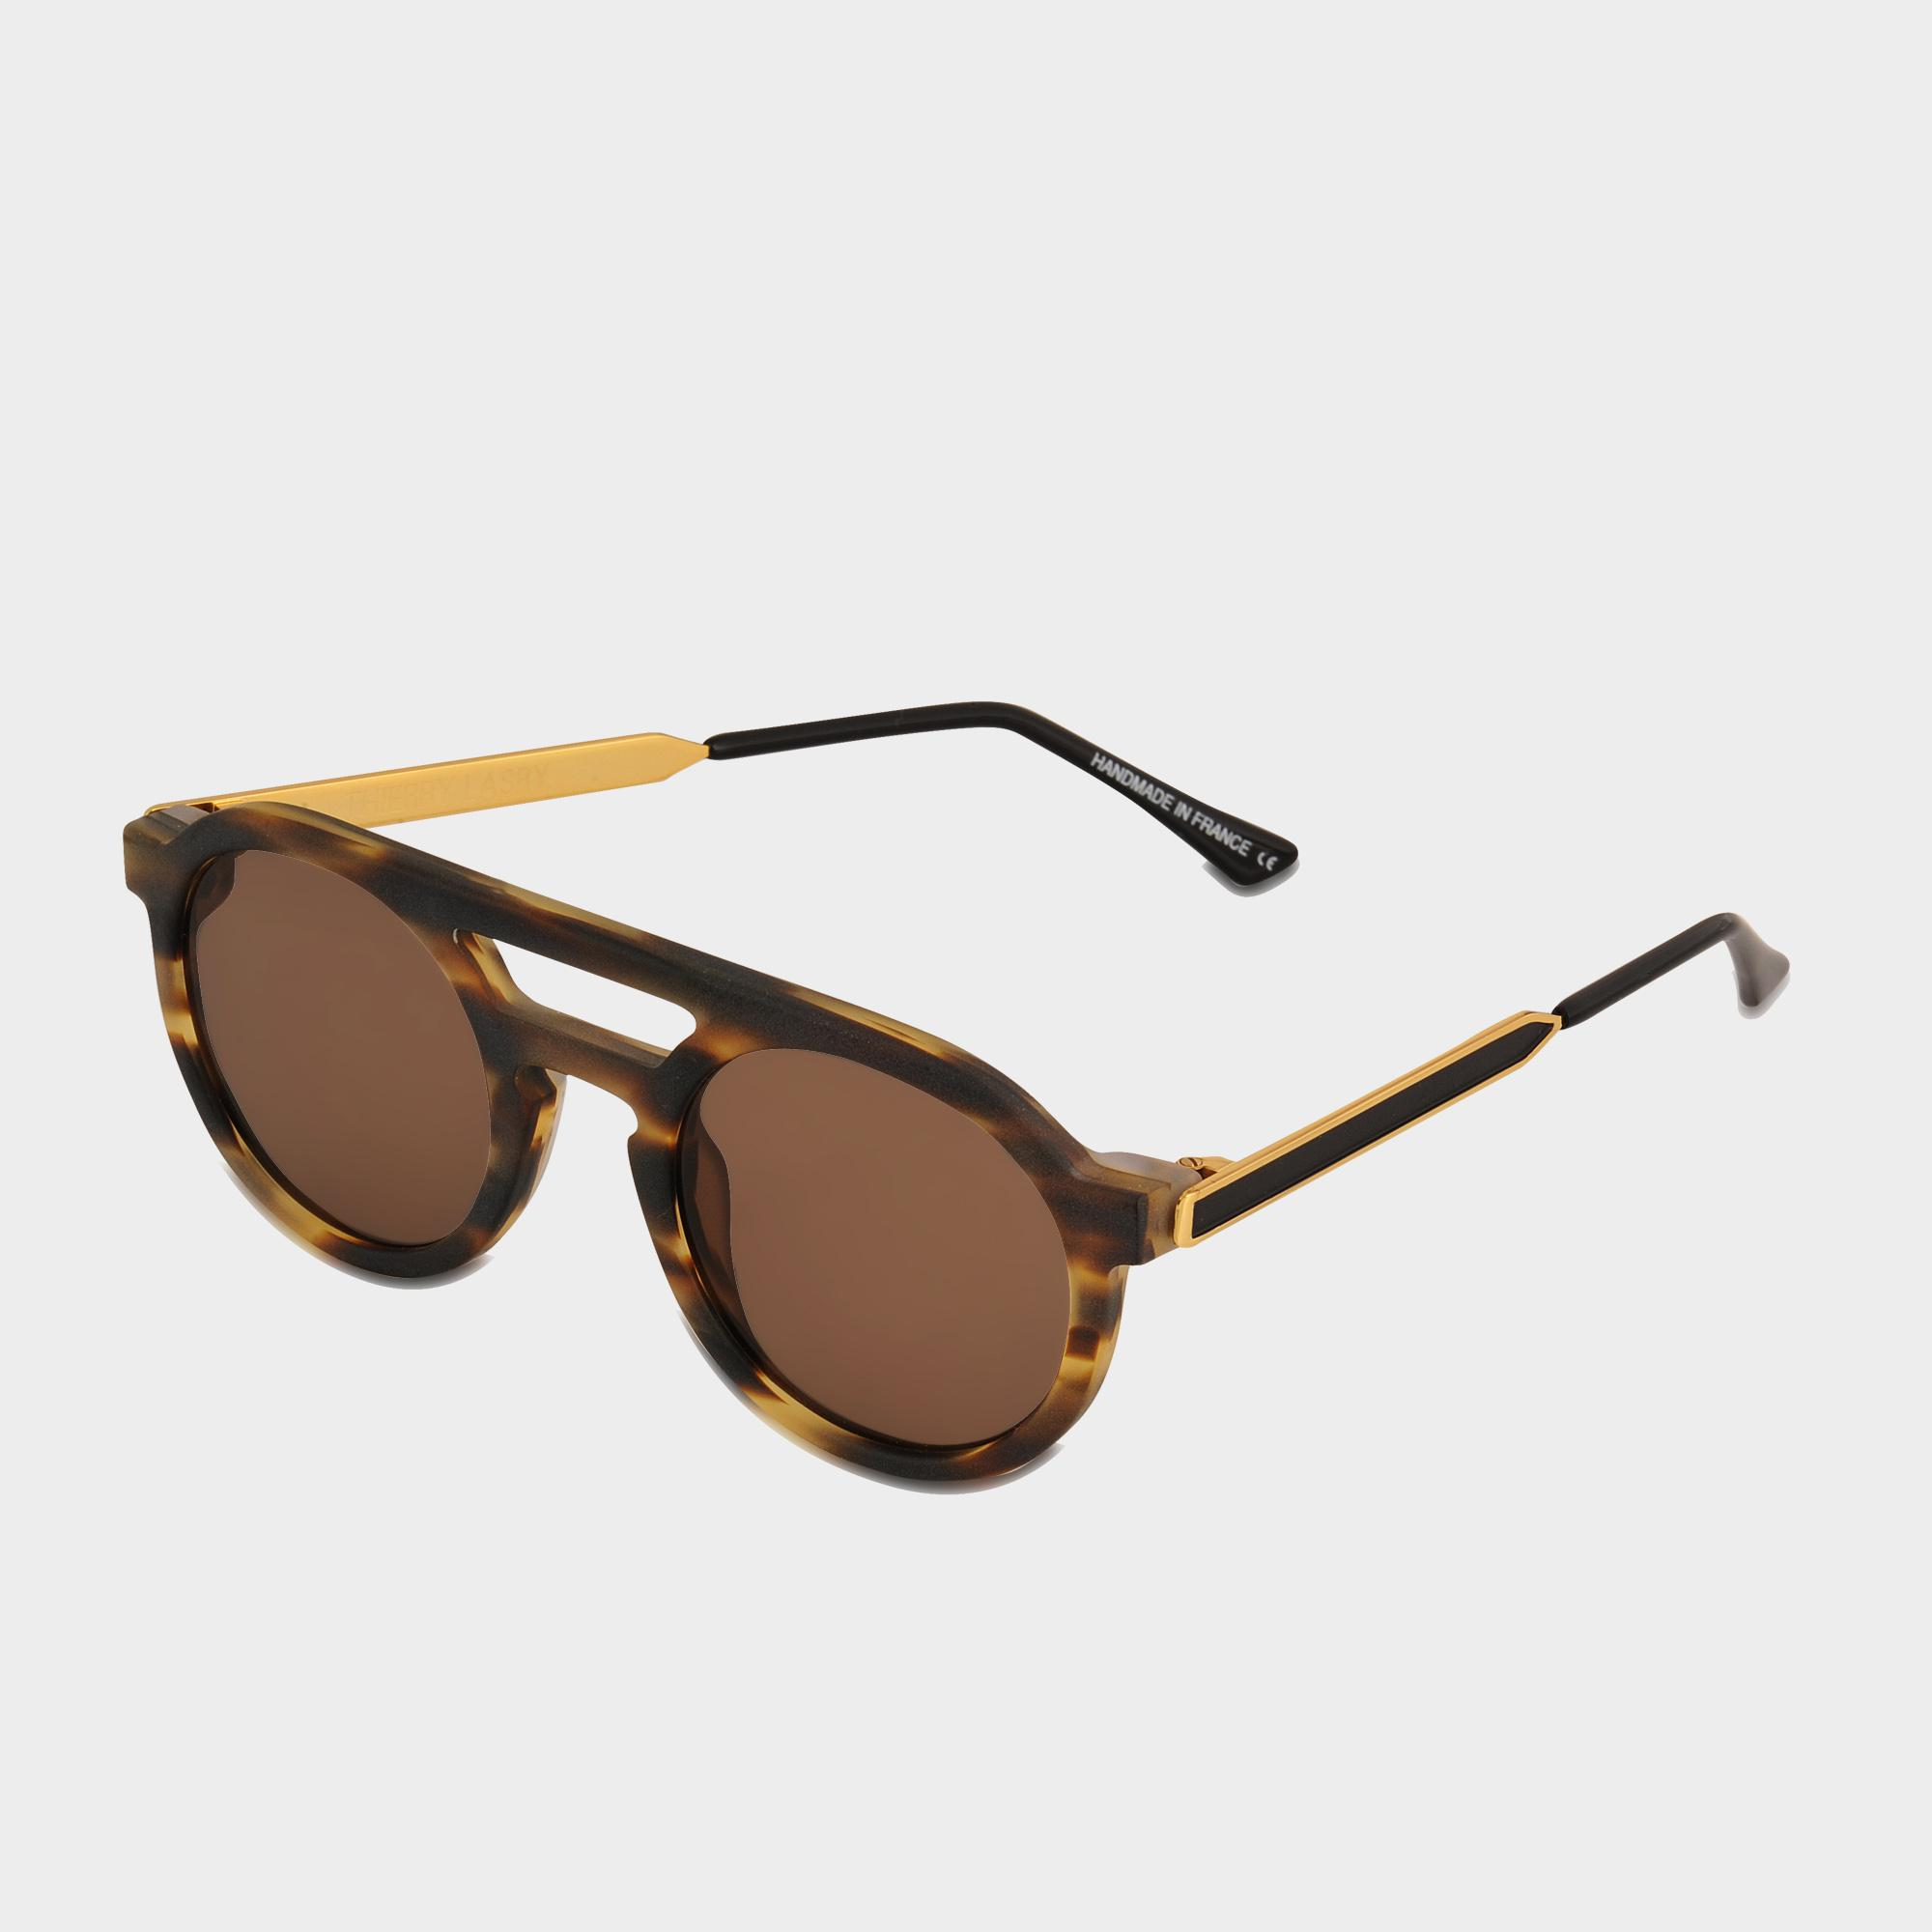 43f21fedc2 Lyst - Thierry Lasry Gravity Sunglasses in Brown